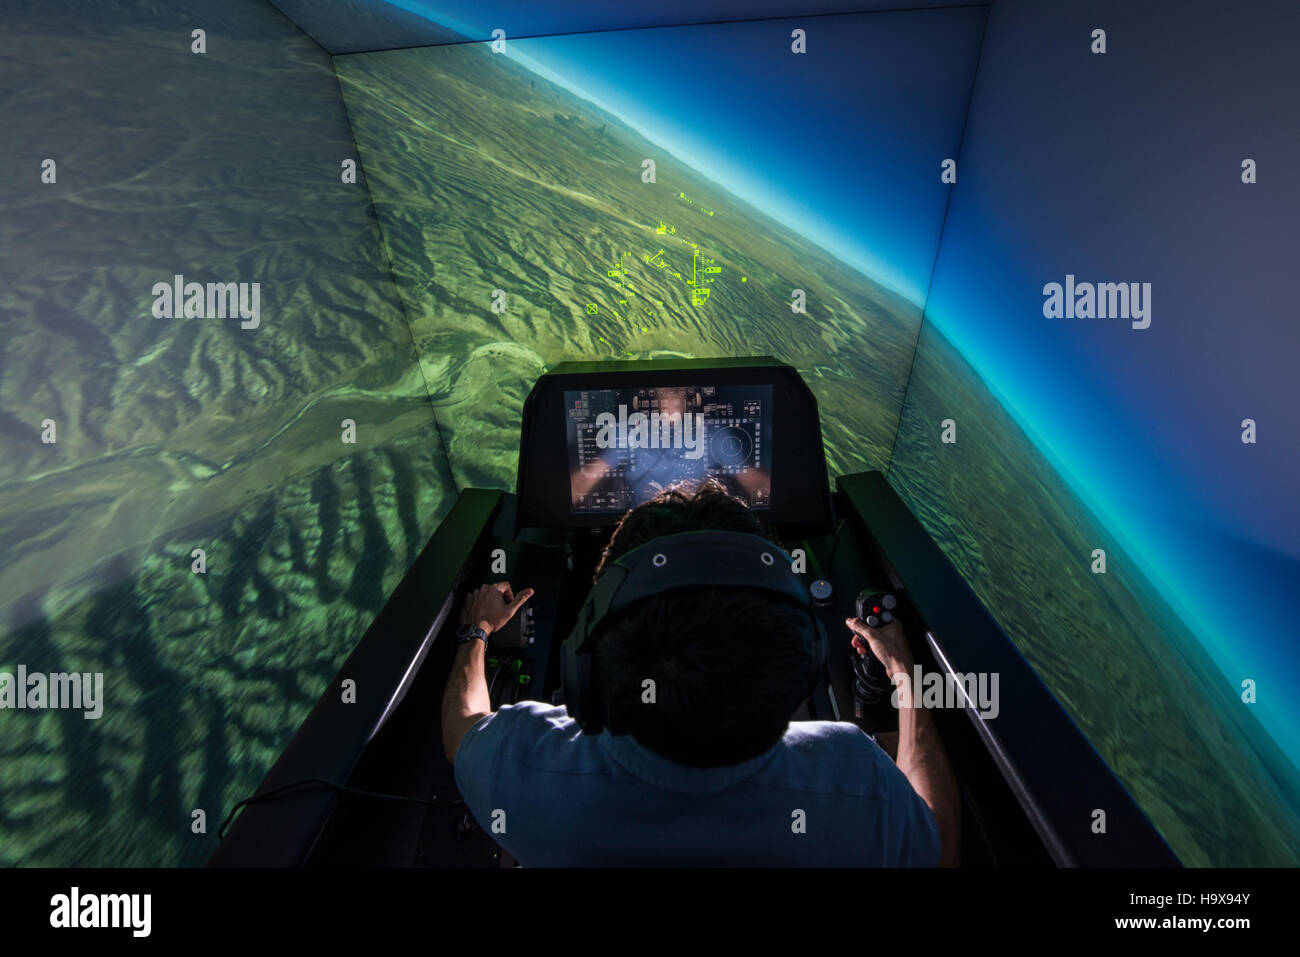 An aerospace engineer demonstrates the Automatic Ground Collision Avoidance System in an F-16 Fighting Falcon fighter - Stock Image